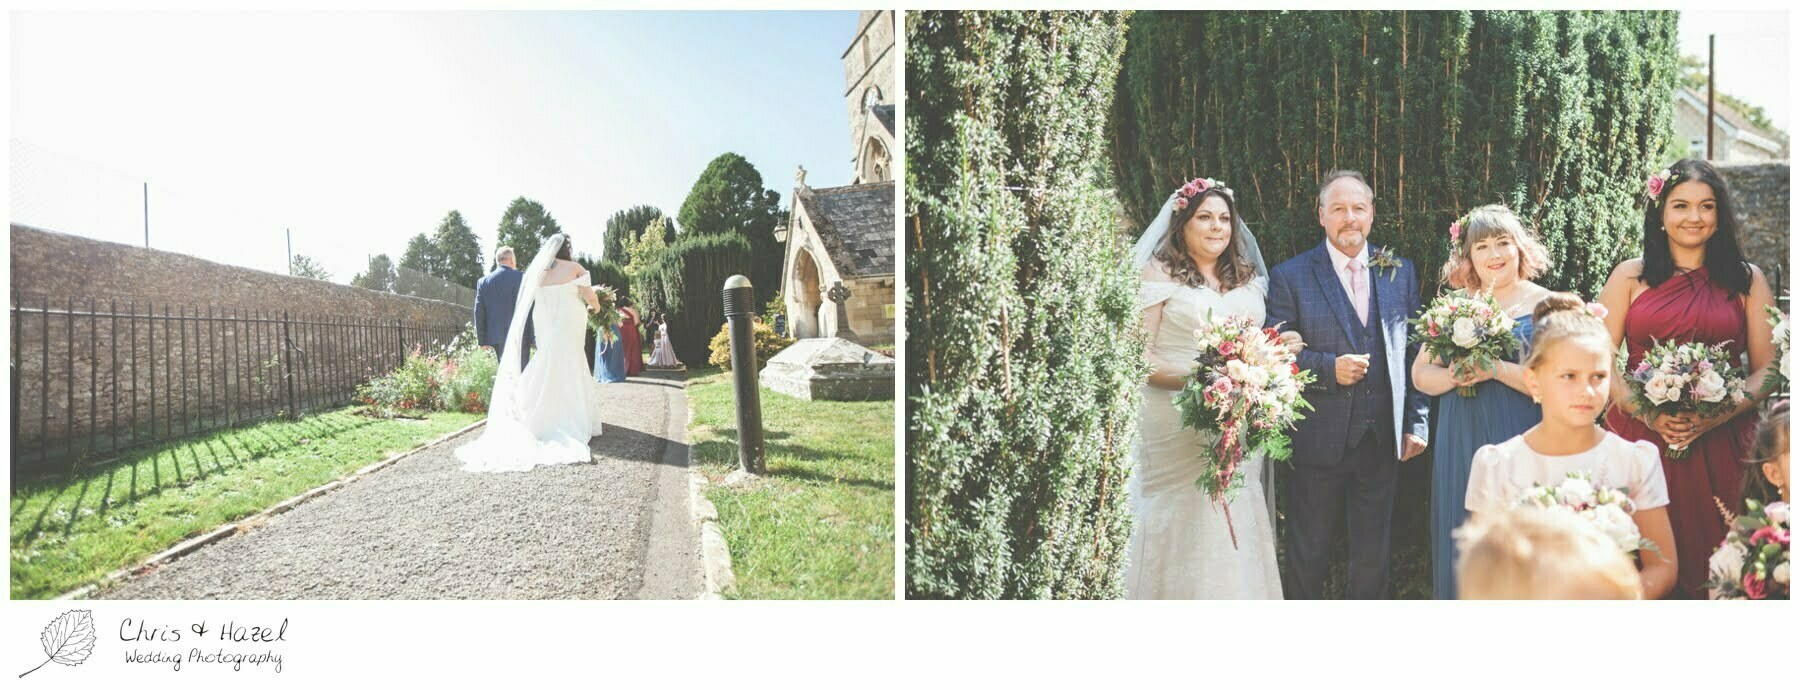 Bride arrives with Wedding guests on the way to Hilperton Church, St Michael & All Angels' Church, Wedding Photography, Wiltshire Wedding Photographer Trowbridge, Chris and Hazel Wedding Photography